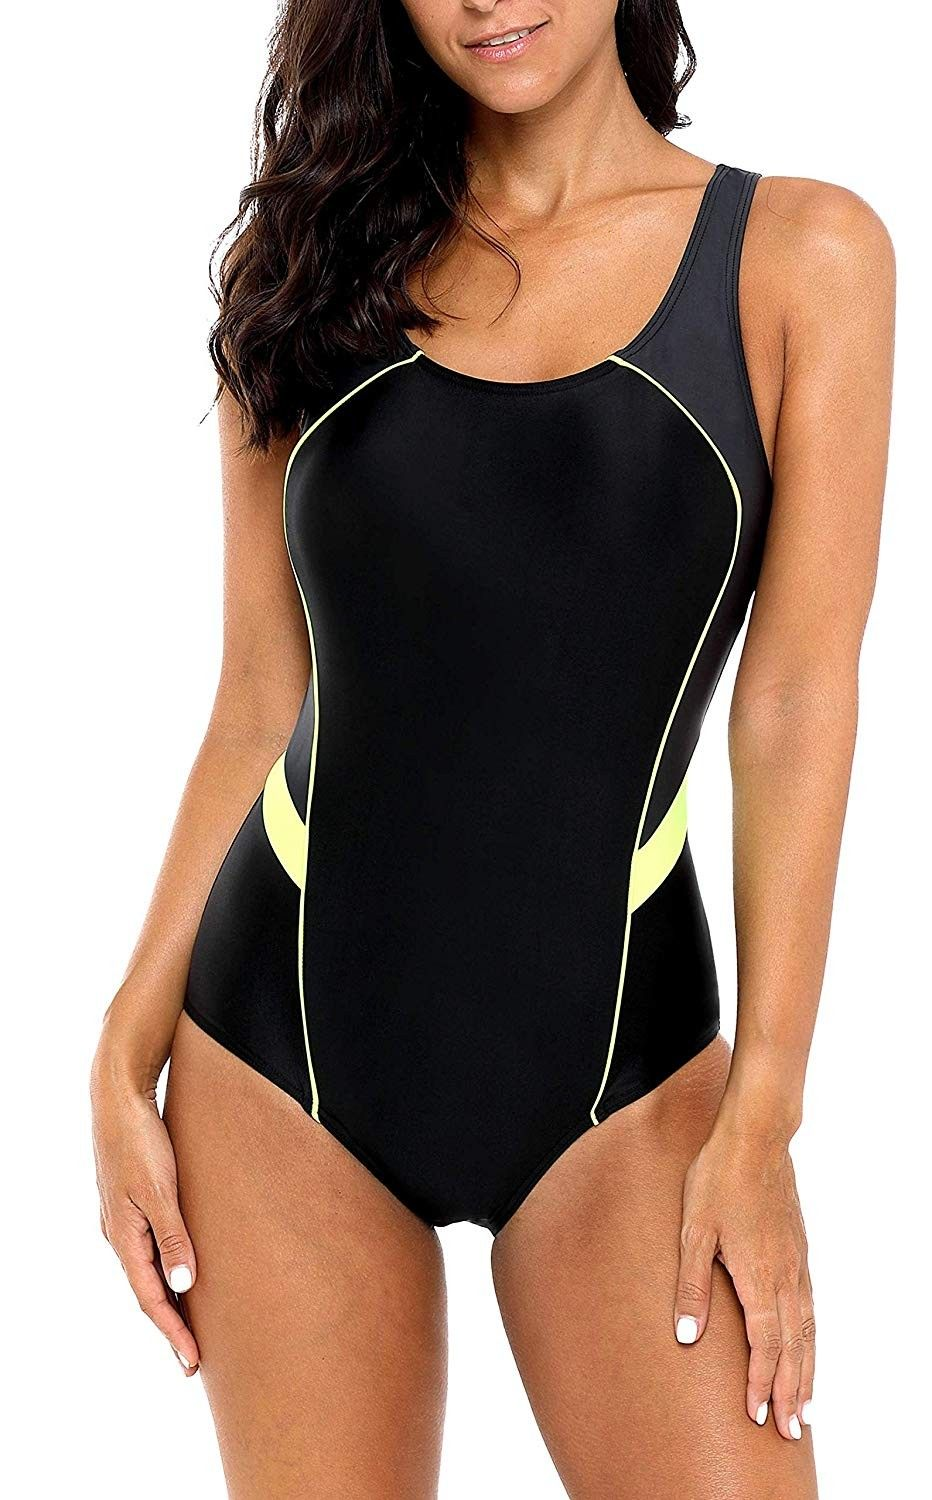 Women's Athletic One Piece Swimsuits Racerback Competitive Bathing Suit - Black-yellow - C118KCK2DSK...